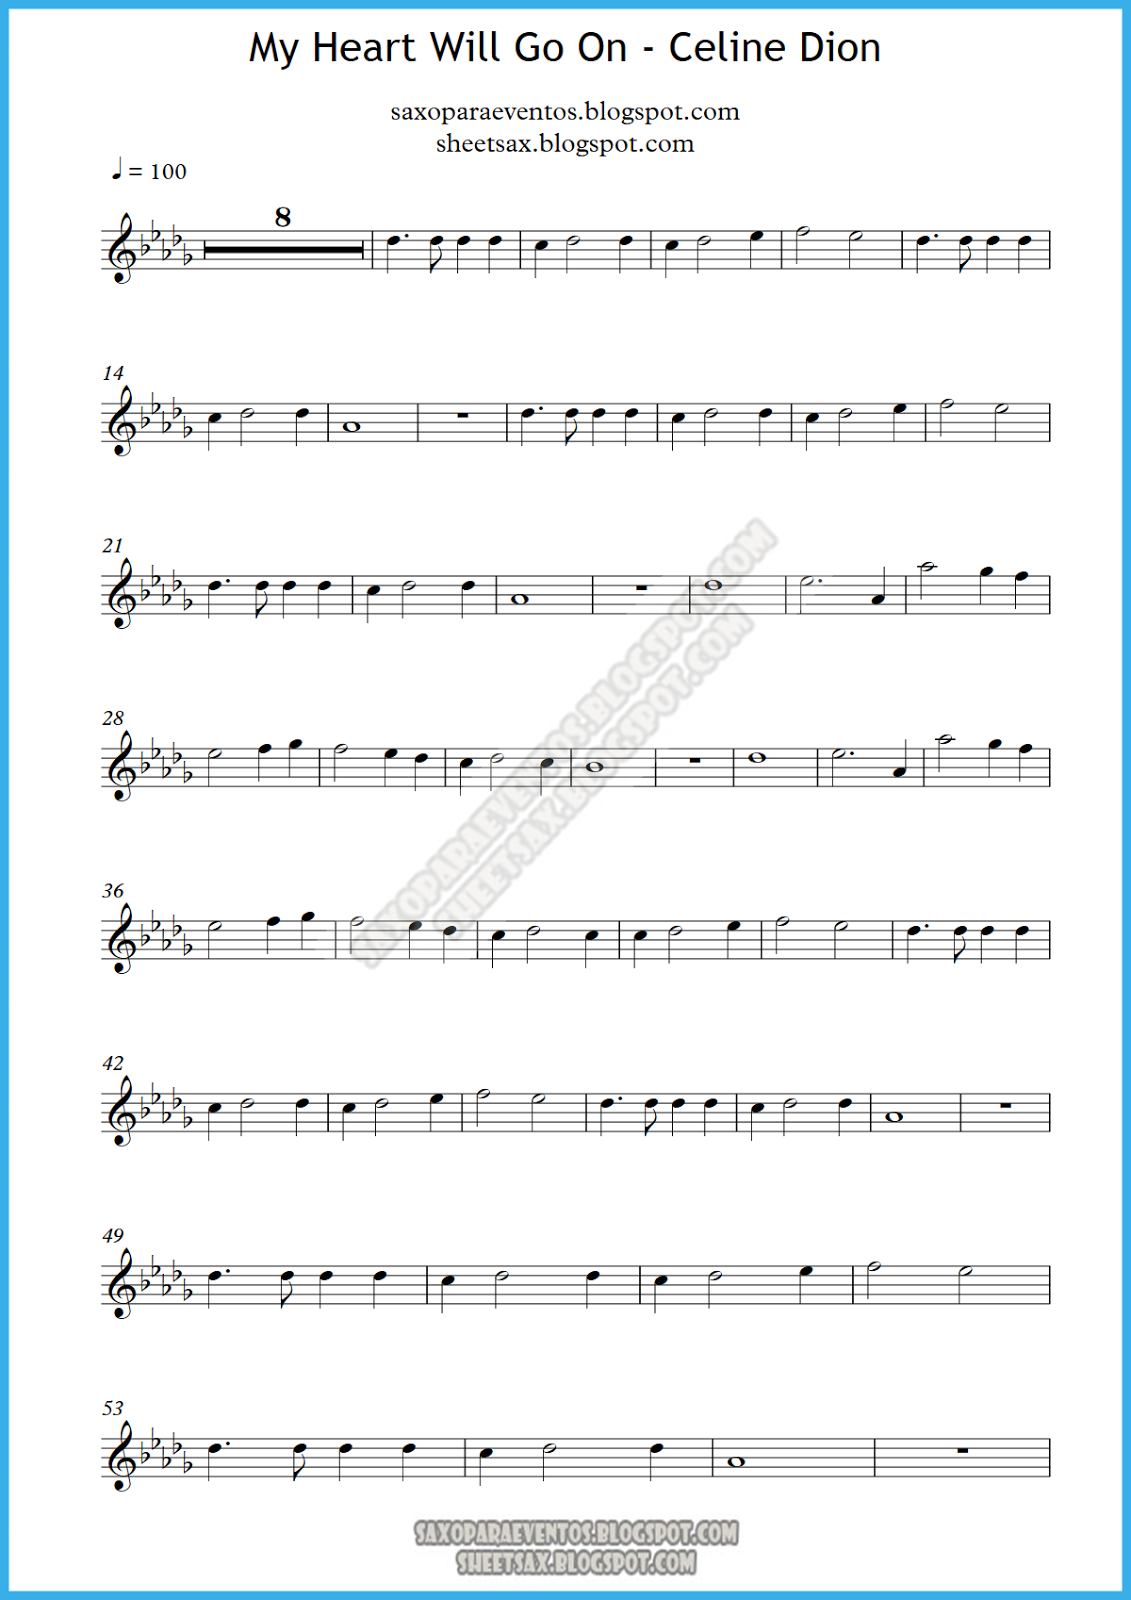 Celine Dion My Heart Will Go On Piano Sheet Music Pdf Used